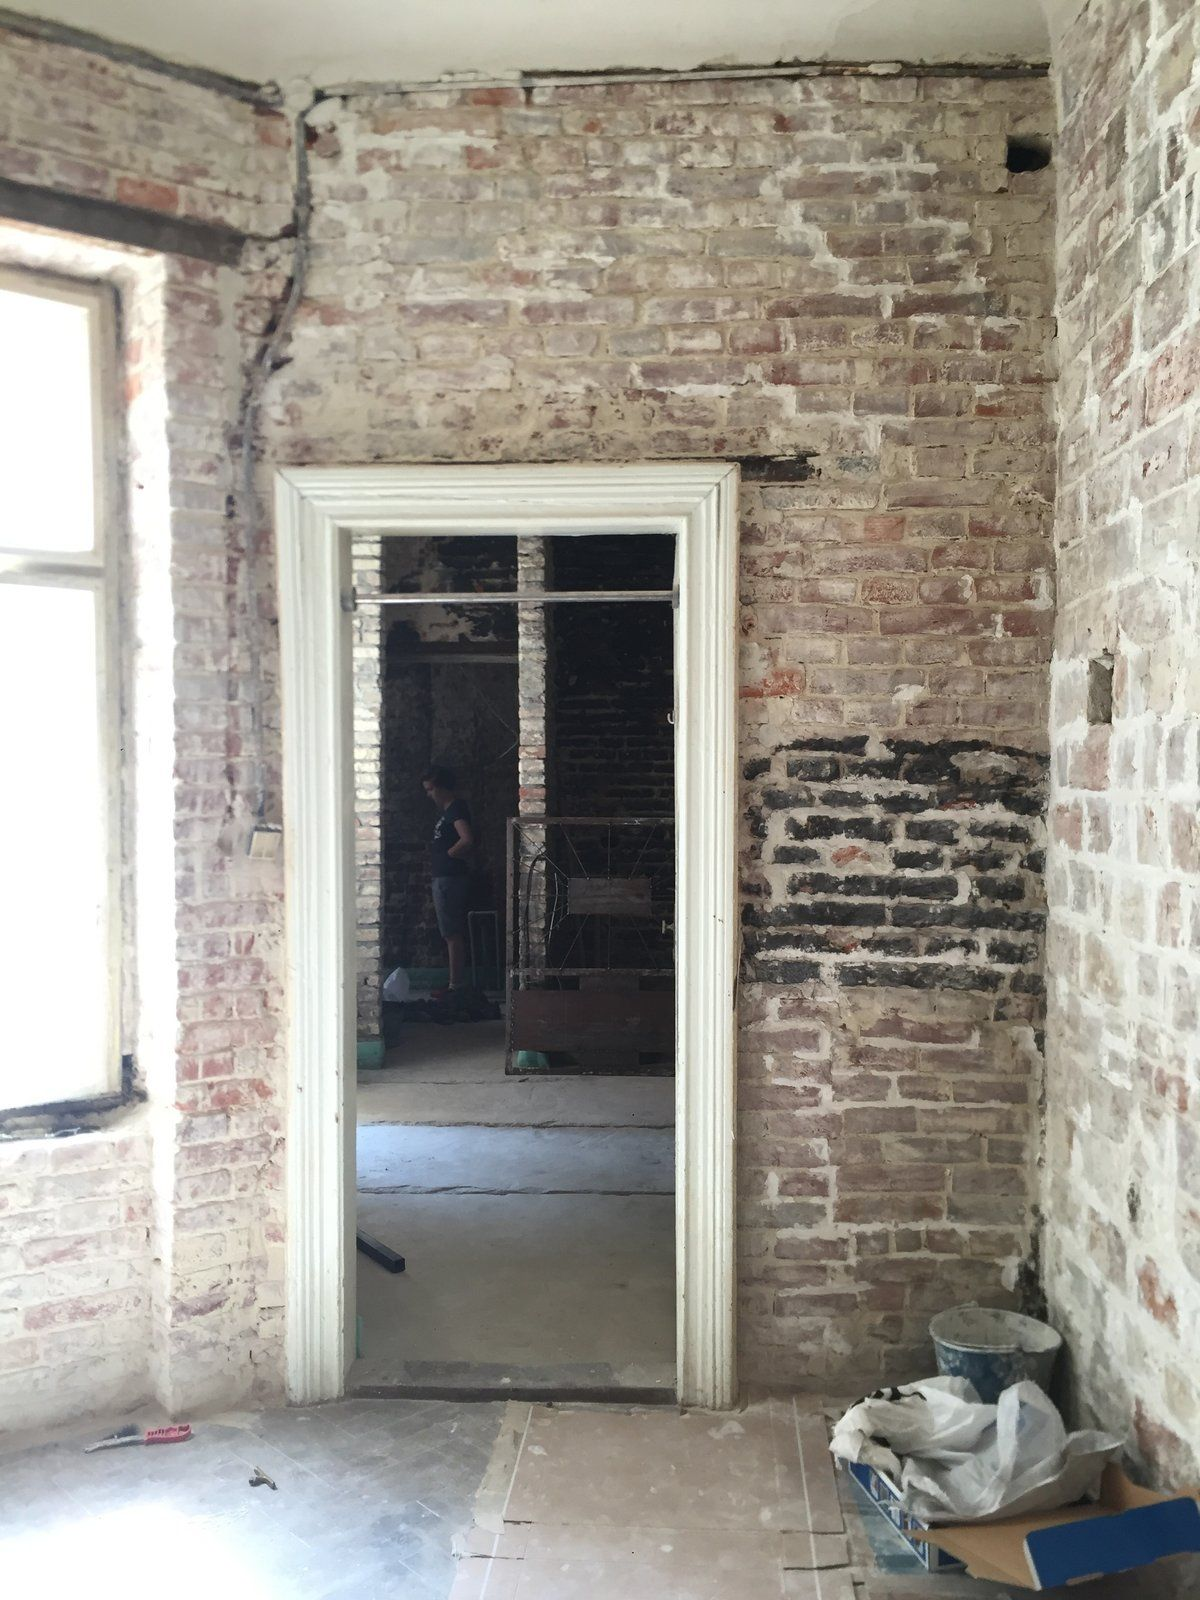 Inside, The Old Brick Walls Were Kept Intact And Painted